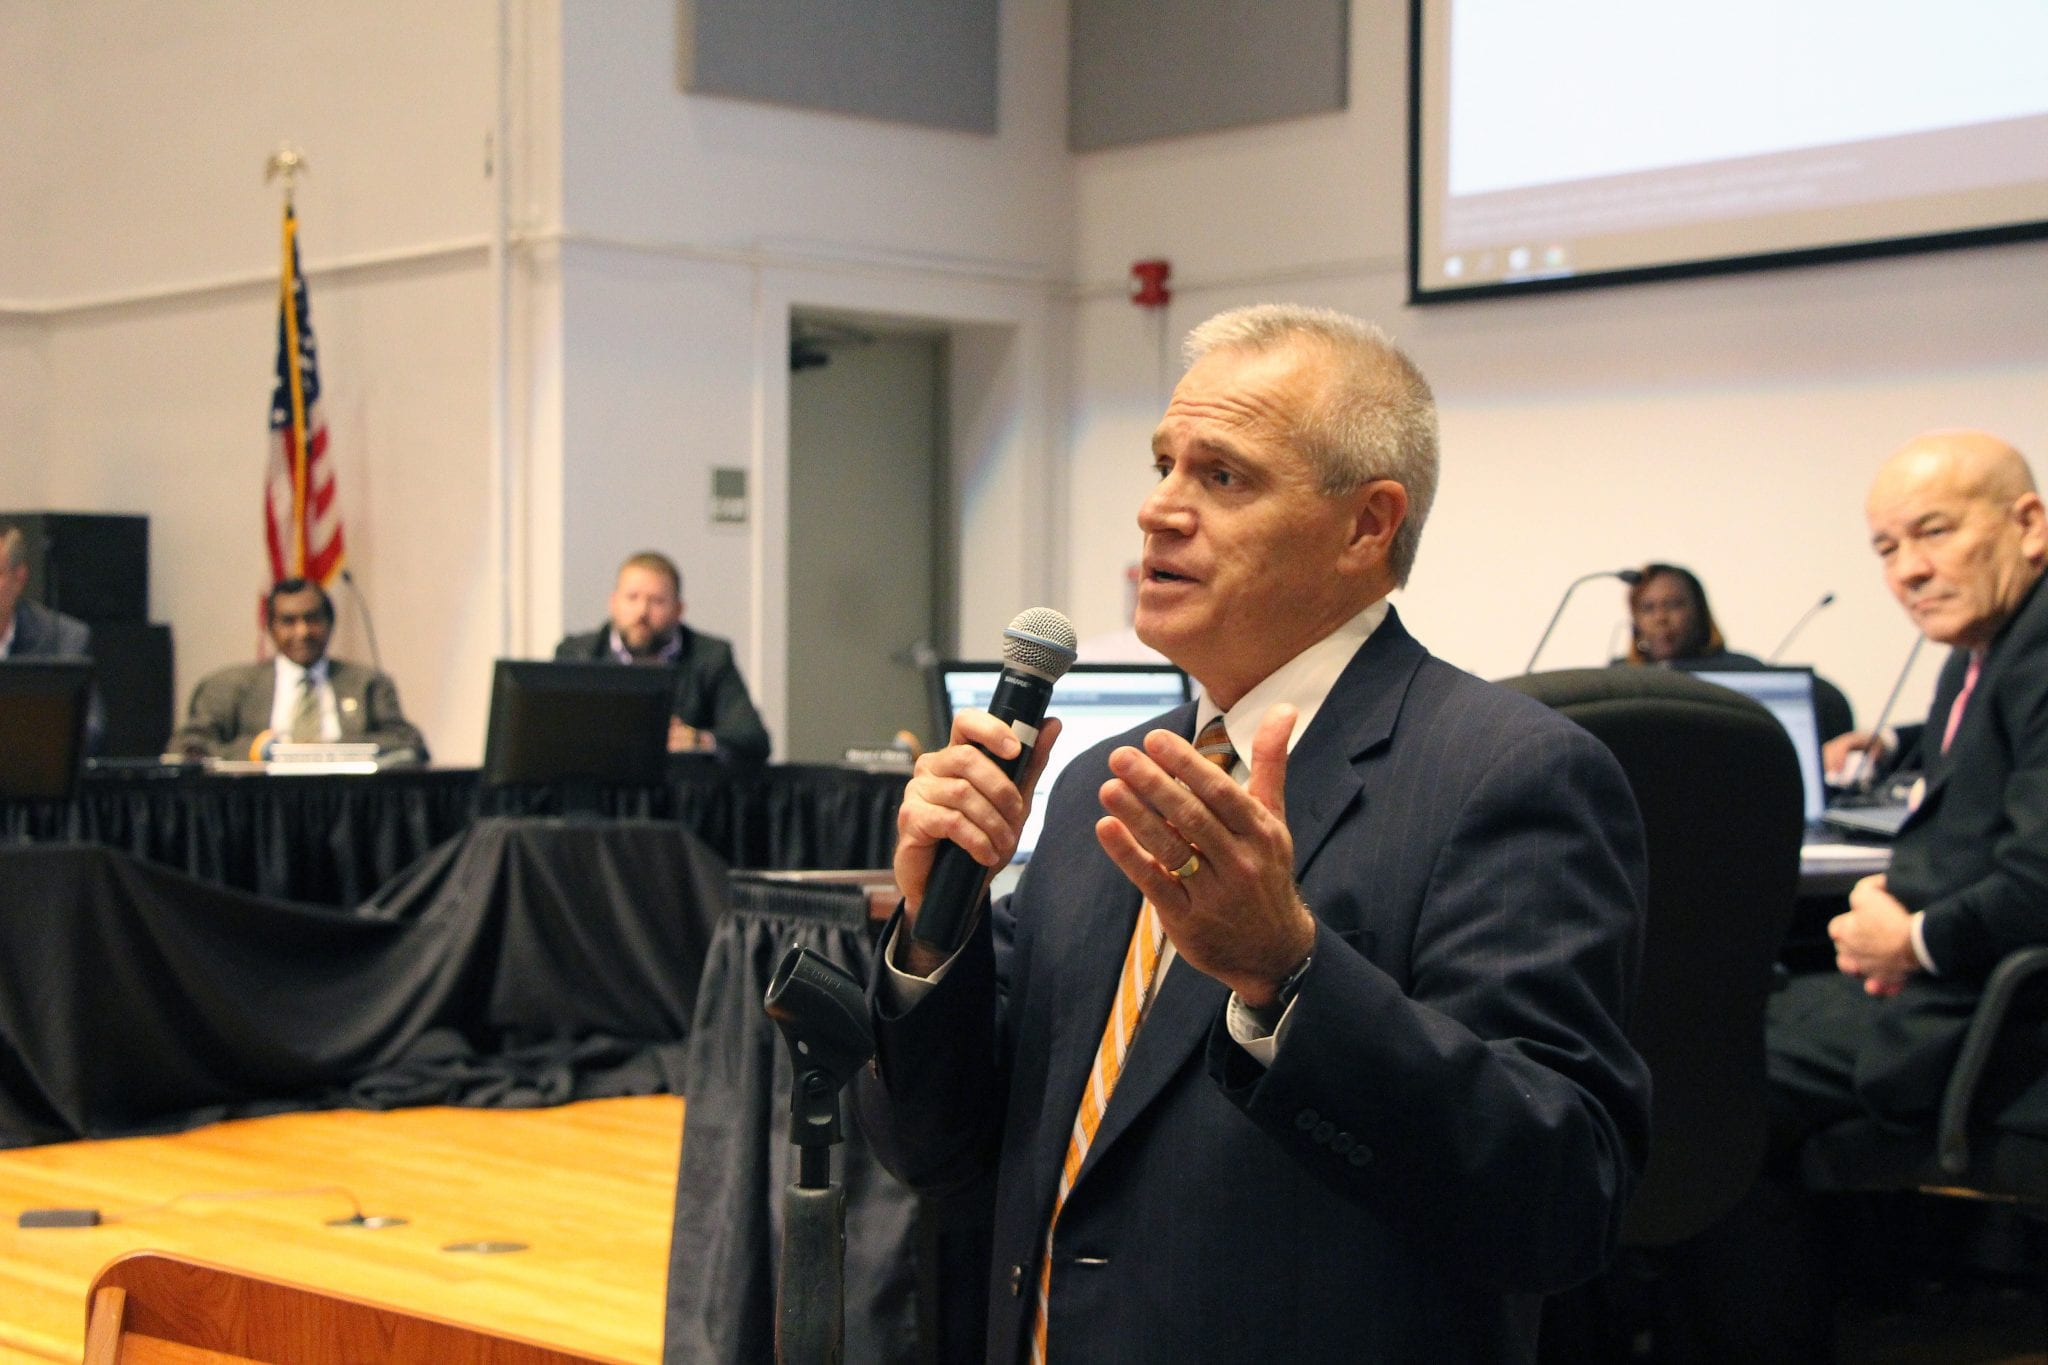 Amanda Simmons/Press-Tribune | Scott Smith addresses the audience following the Bossier School Board's vote to name him the new Superintendent of Bossier Schools. Smith received nine out of 11 board member votes.